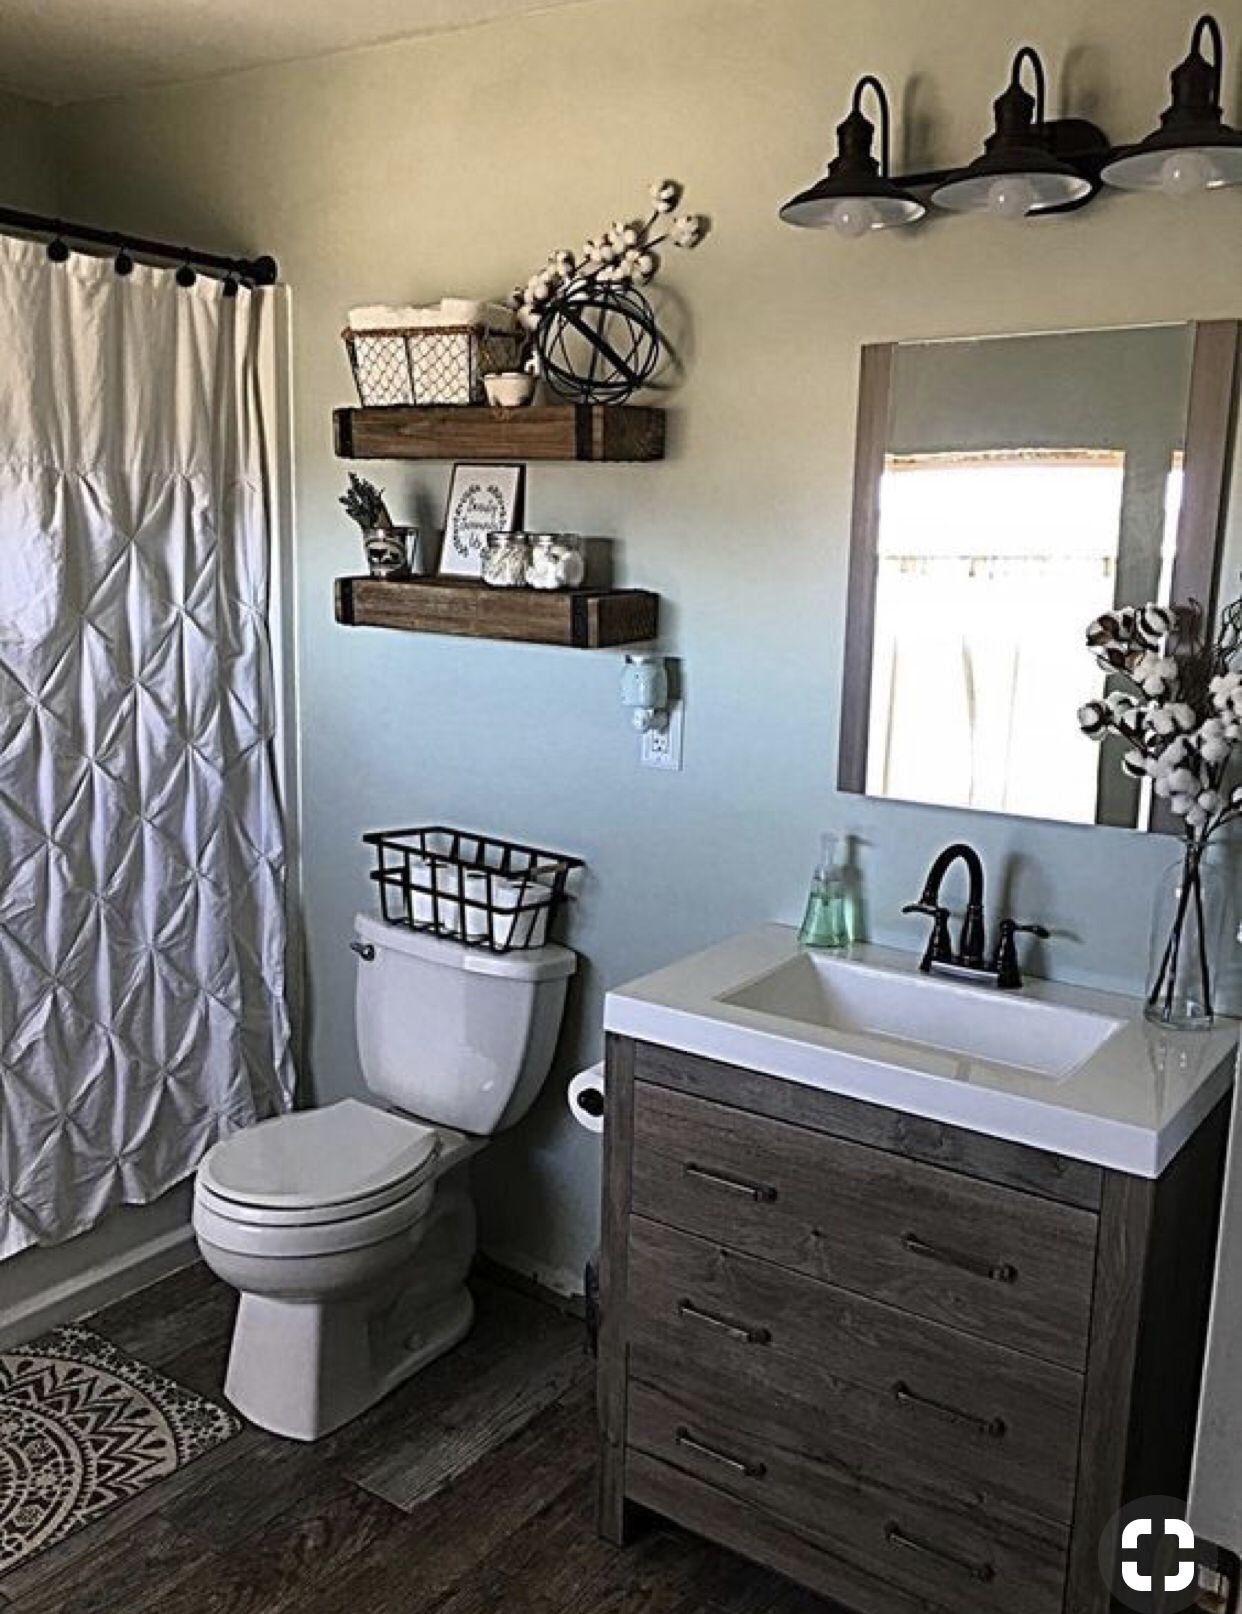 Masterbathroom Small Bathroom Decor Bathroom Makeovers On A Budget Budget Home Decorating